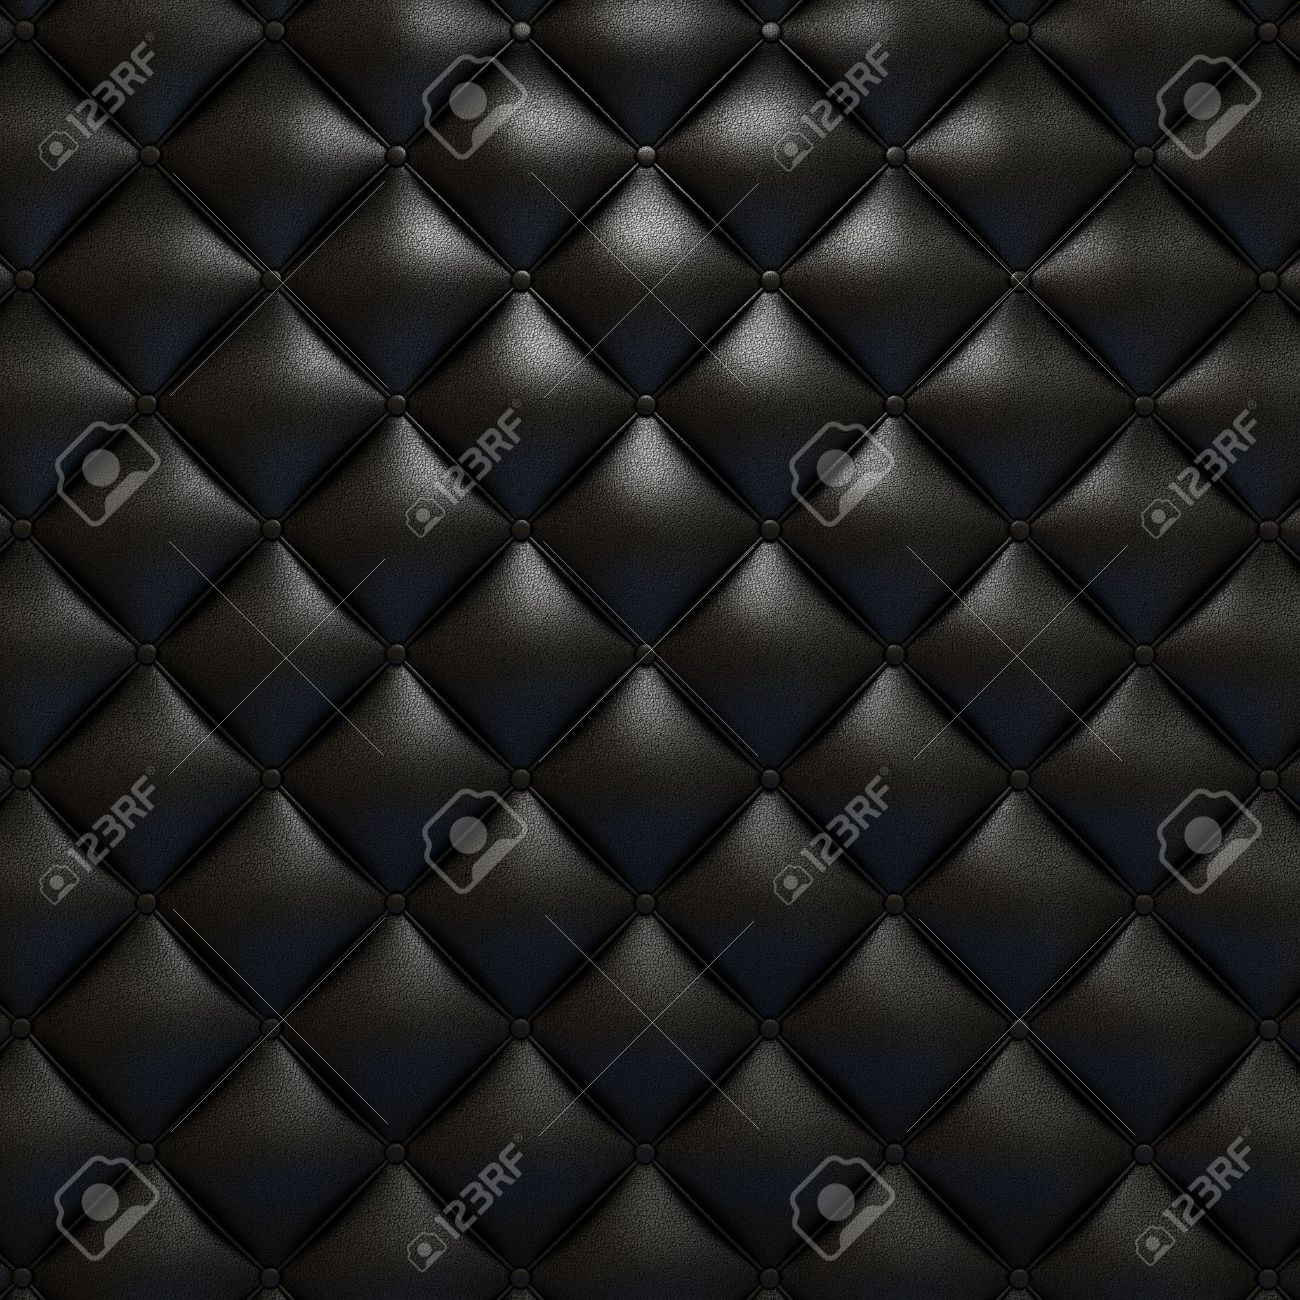 Black leather upholstery texture with grat detail for background,